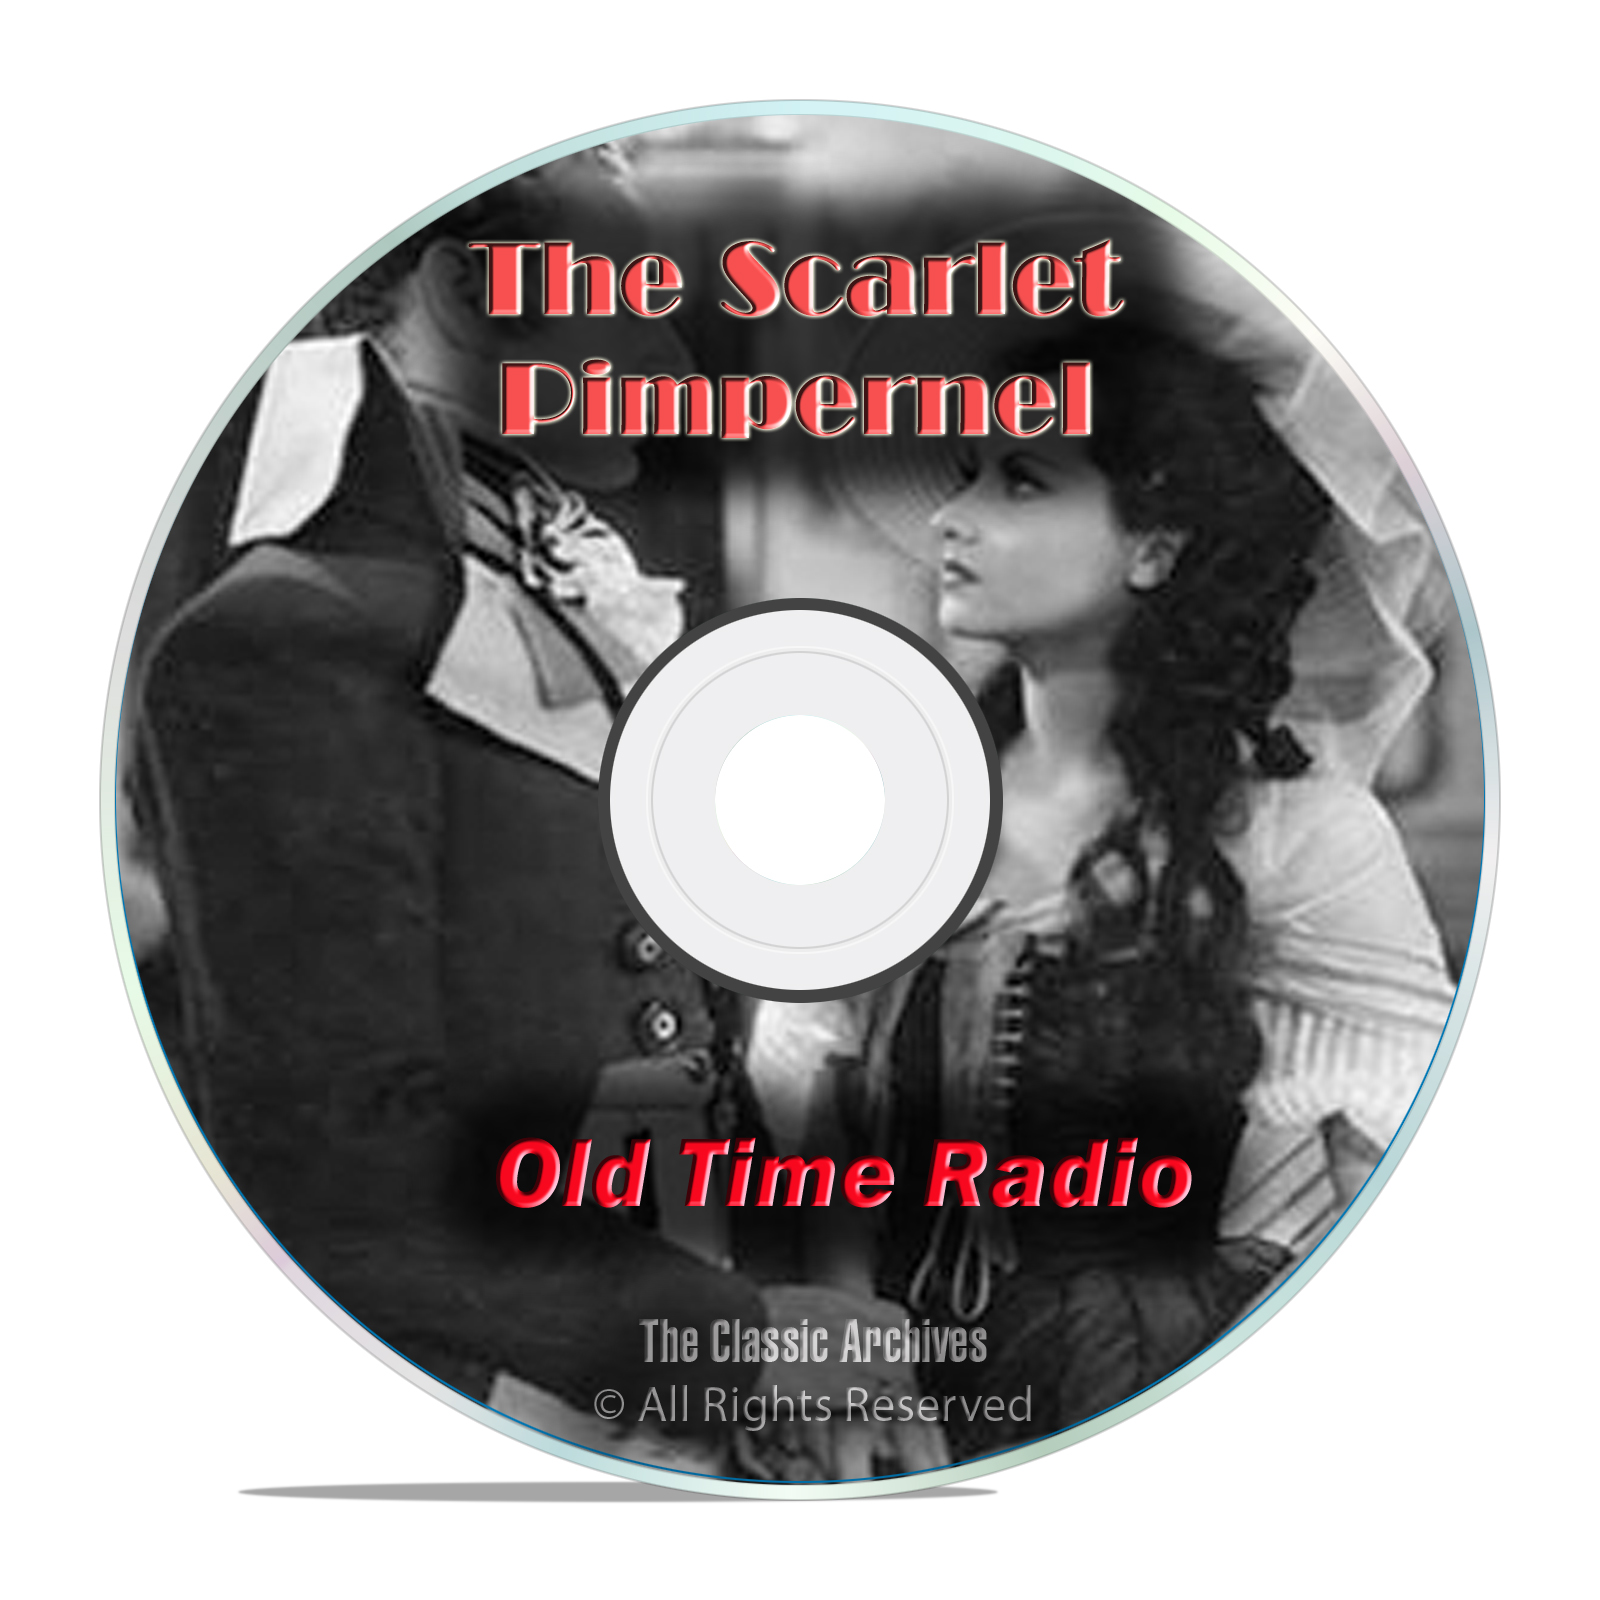 The Scarlet Pimpernel, 483 Old Time Radio Shows, British Drama, mp3 DVD